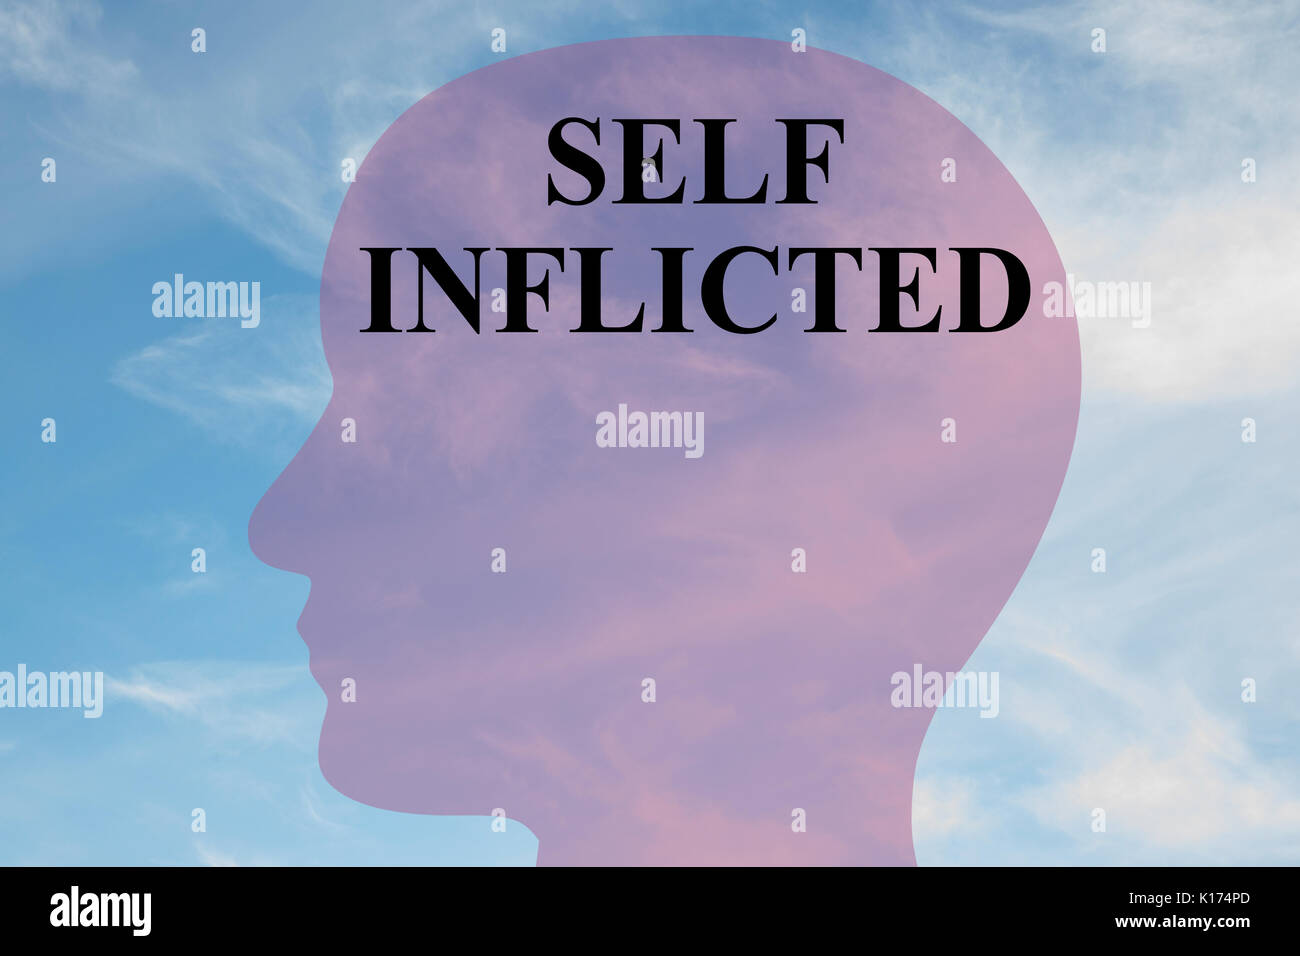 Render illustration of 'SELF INFLICTED' script on head silhouette, with cloudy sky as a background. - Stock Image